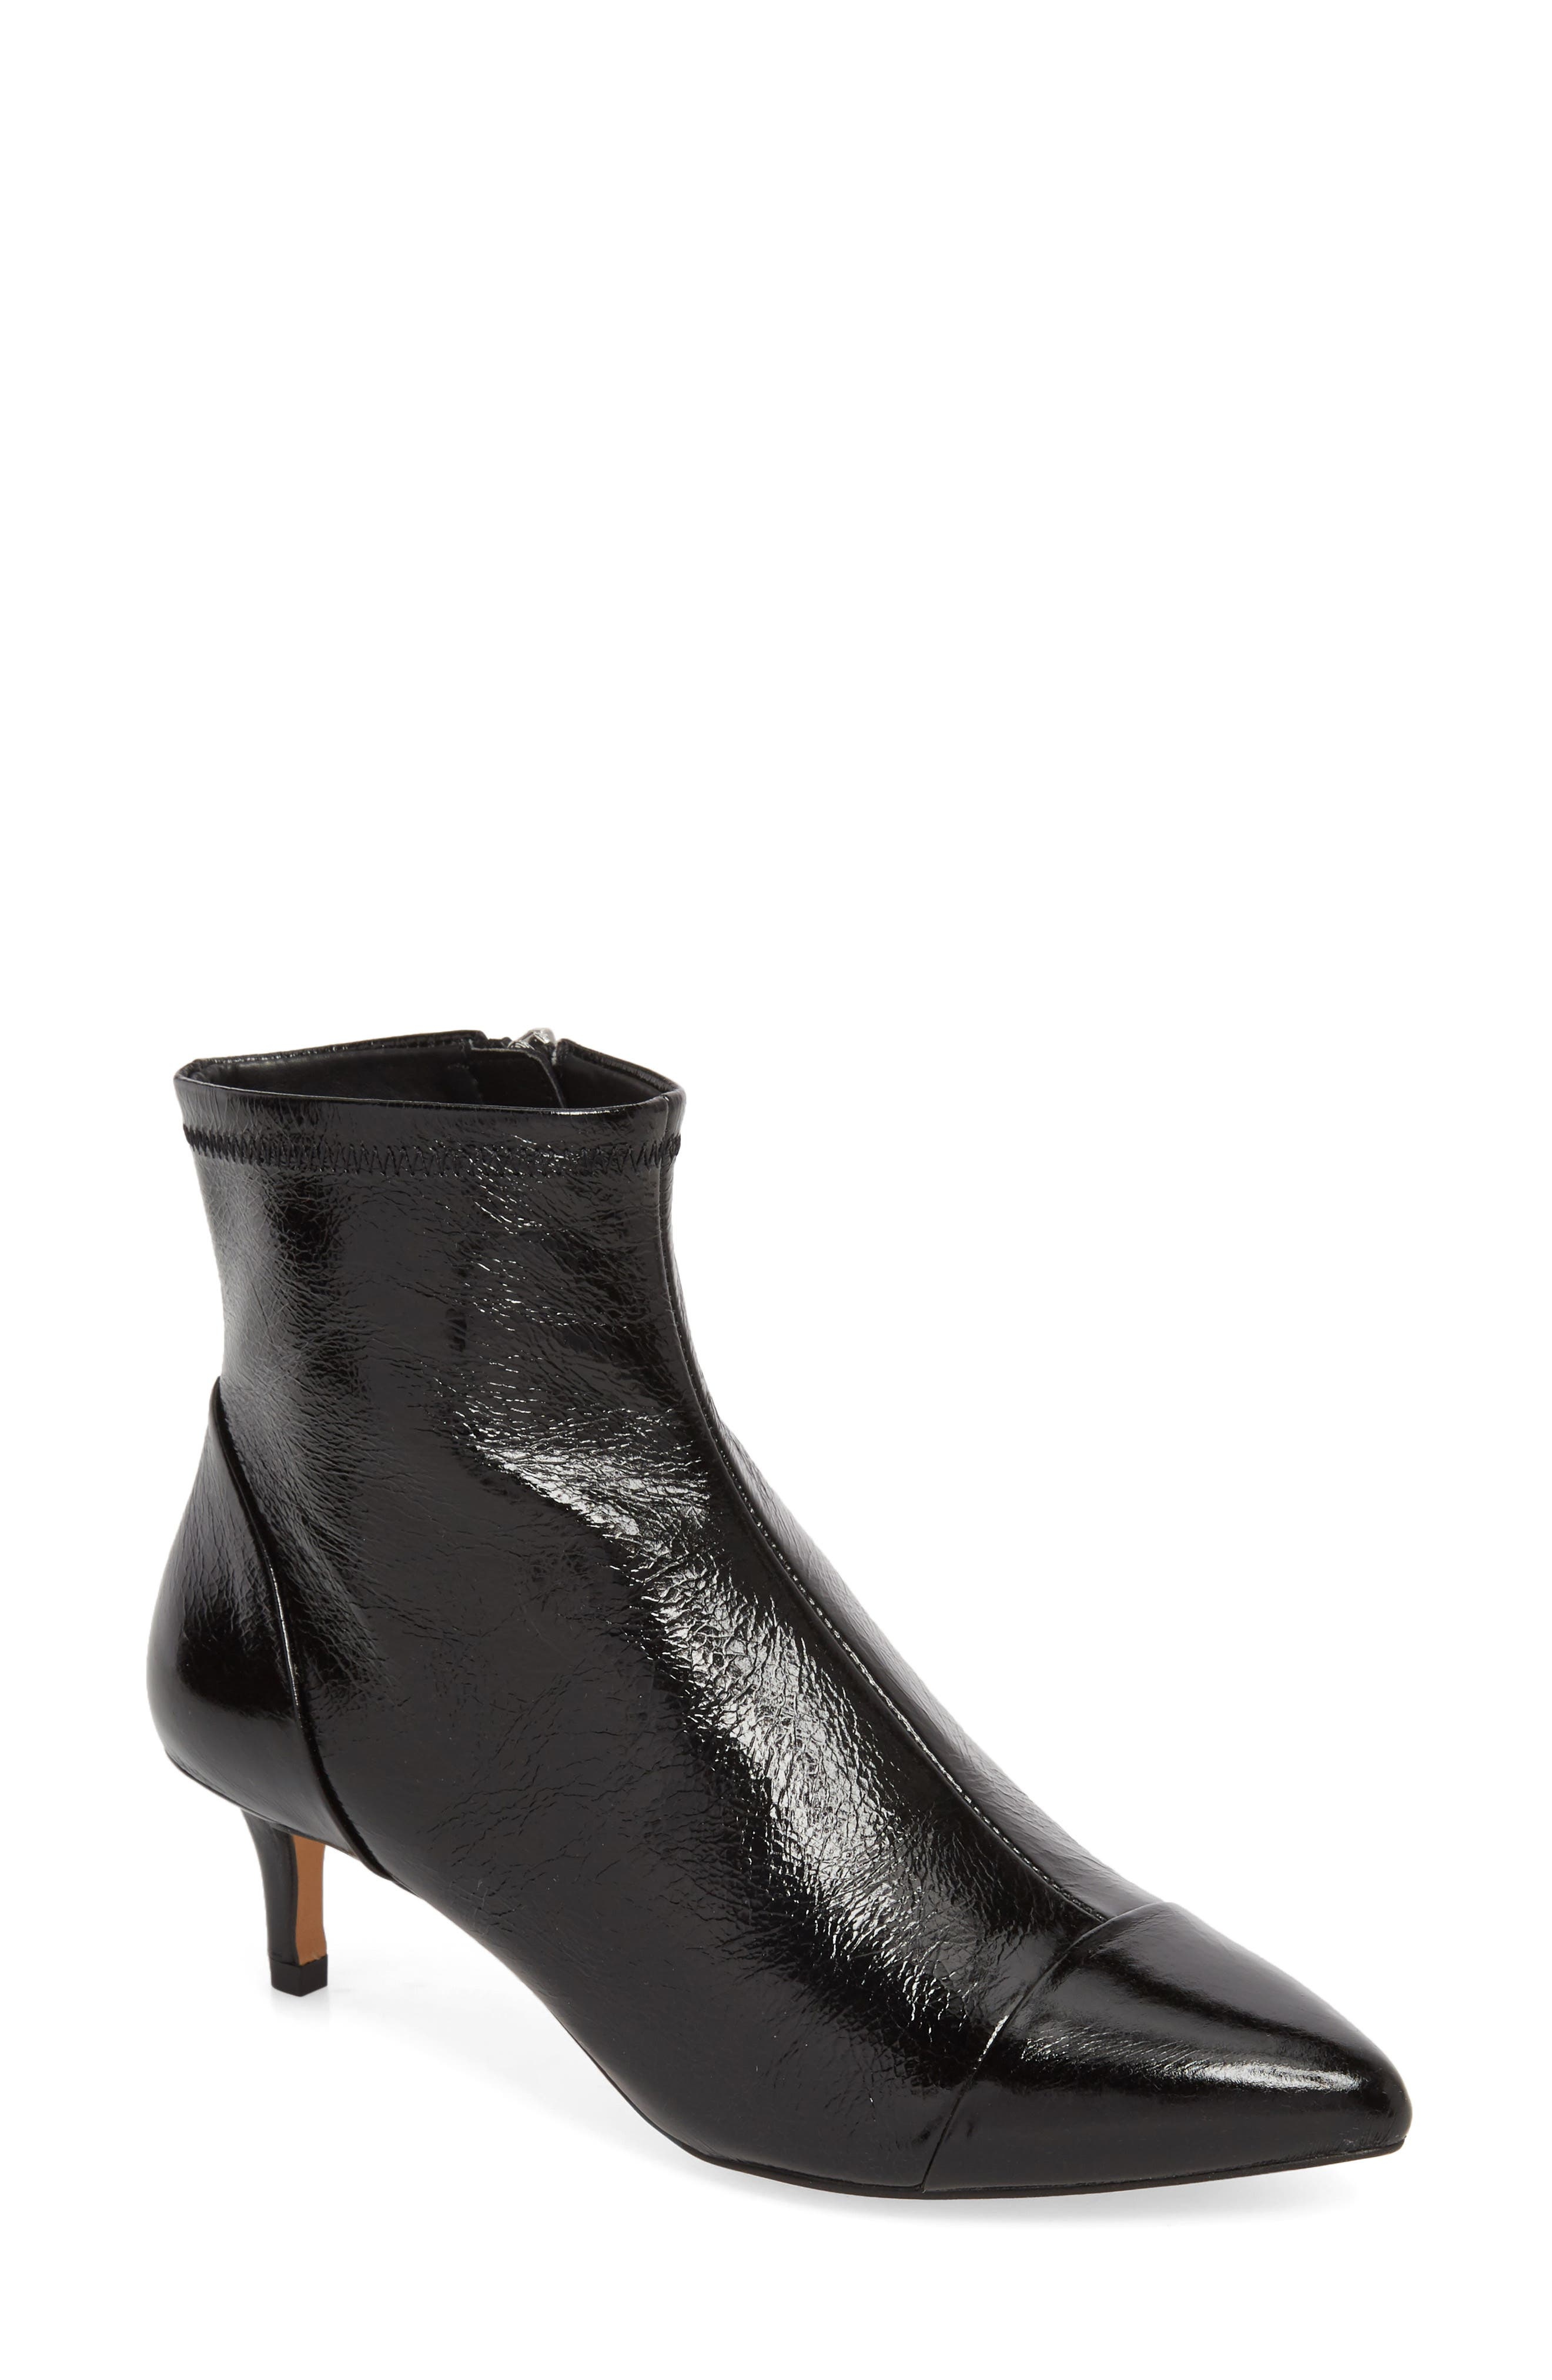 Siya Bootie,                         Main,                         color, BLACK LEATHER